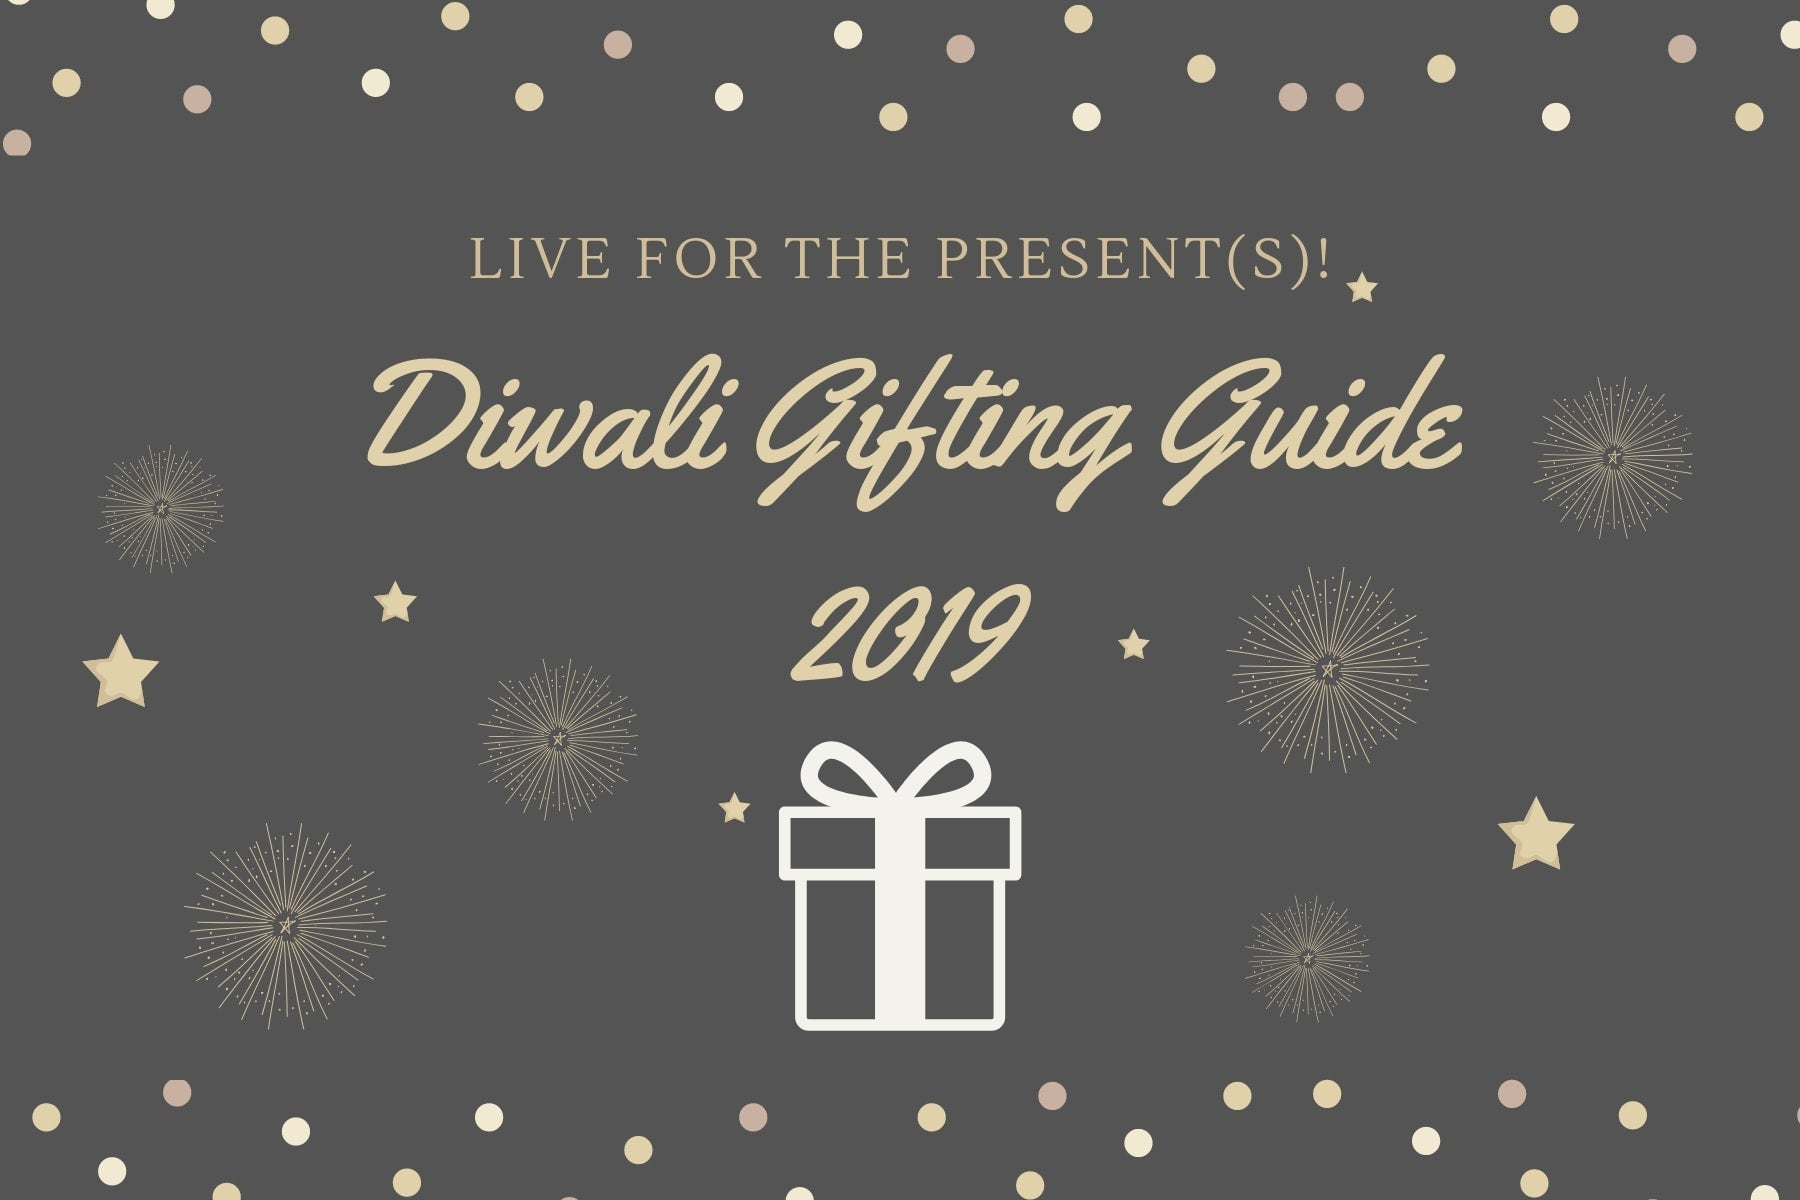 The Diwali Gifting Guide 2019